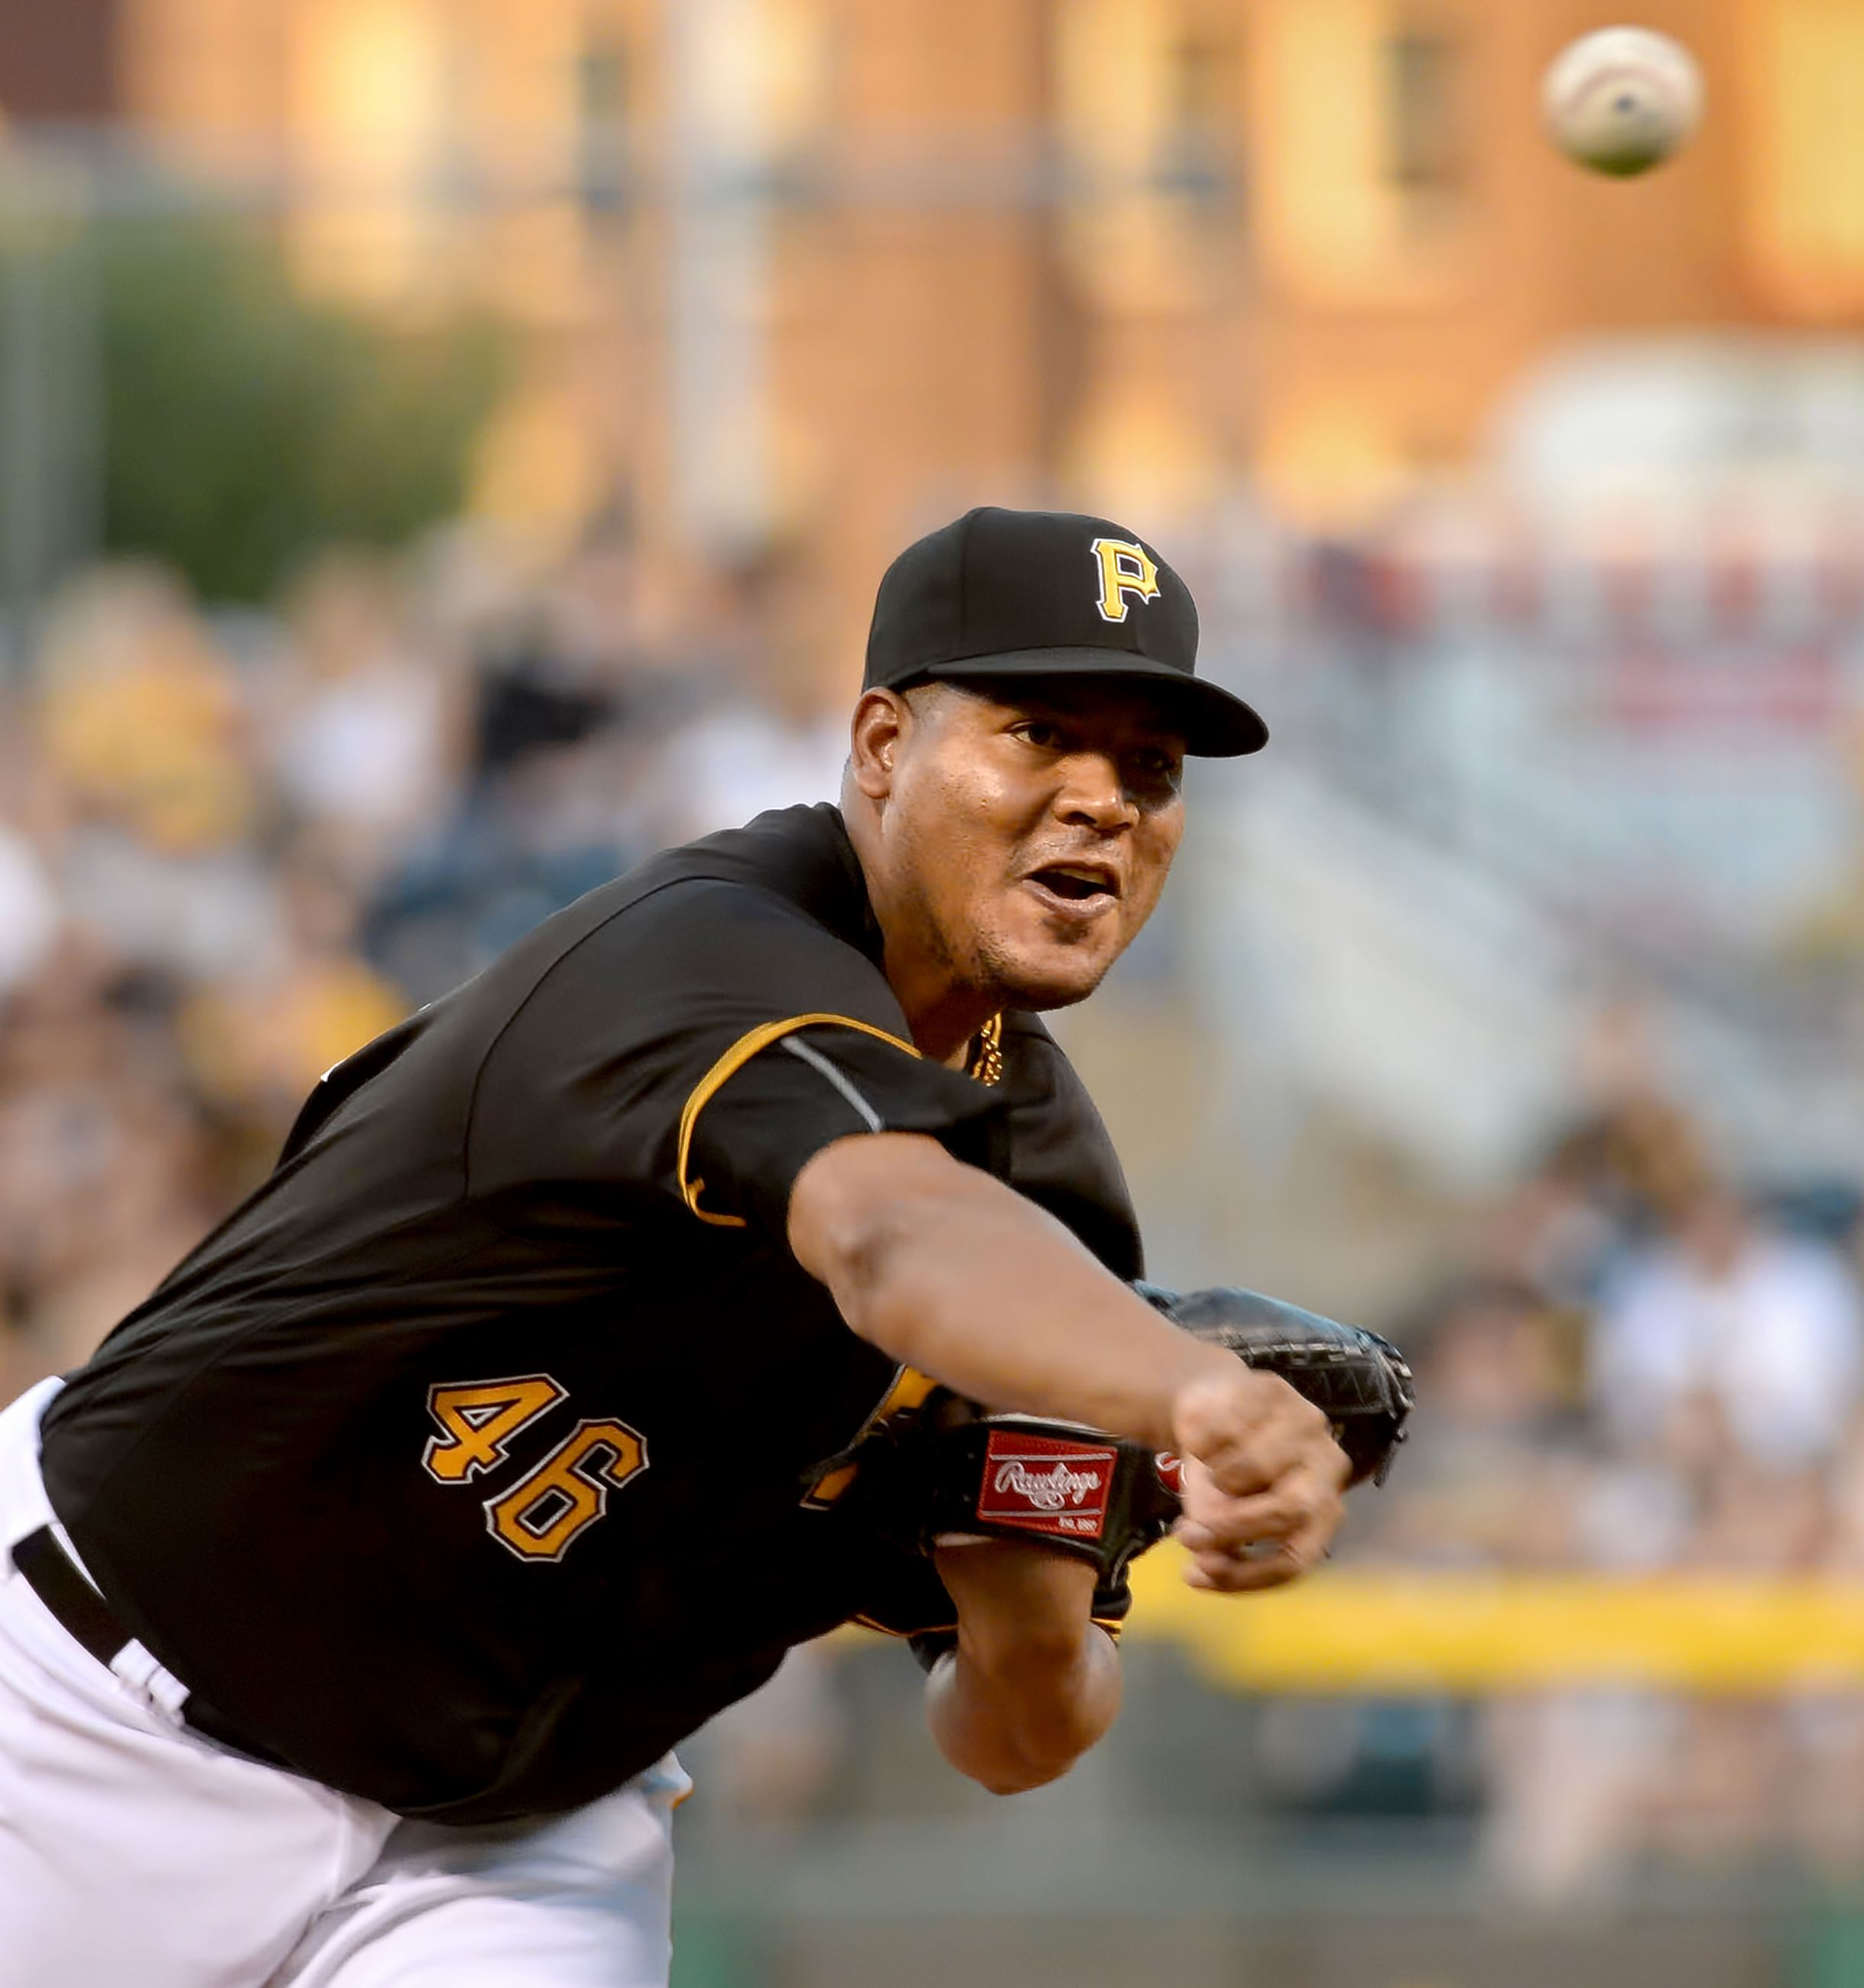 Trade deadline acquisition Ivan Nova throws seven strong innings to win Pirates debut, 5-3